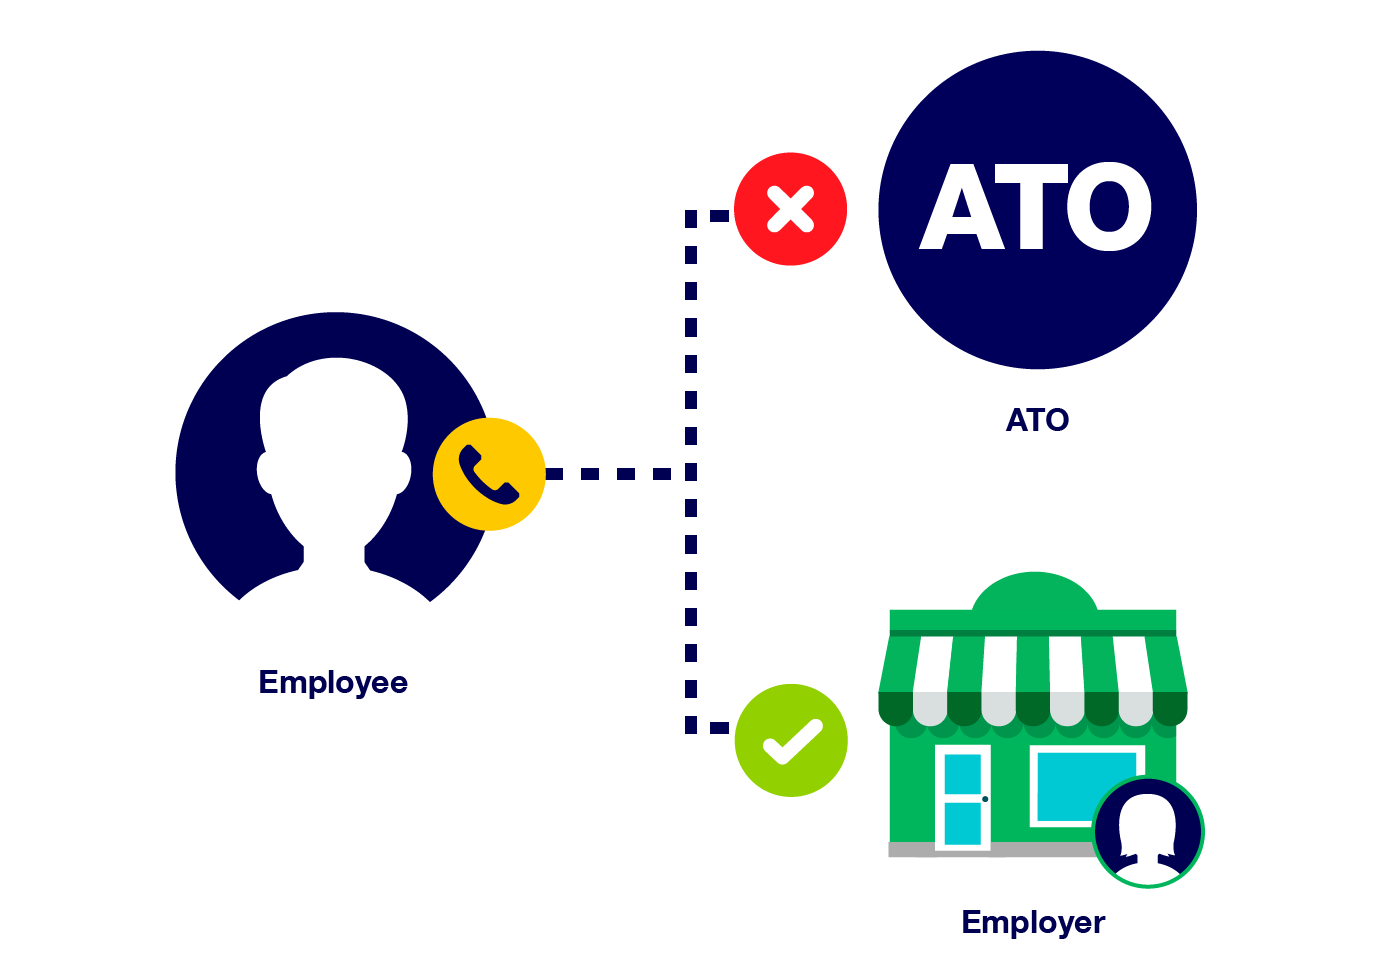 Employees do not phone or contact the ATO. They need to speak to their employer.